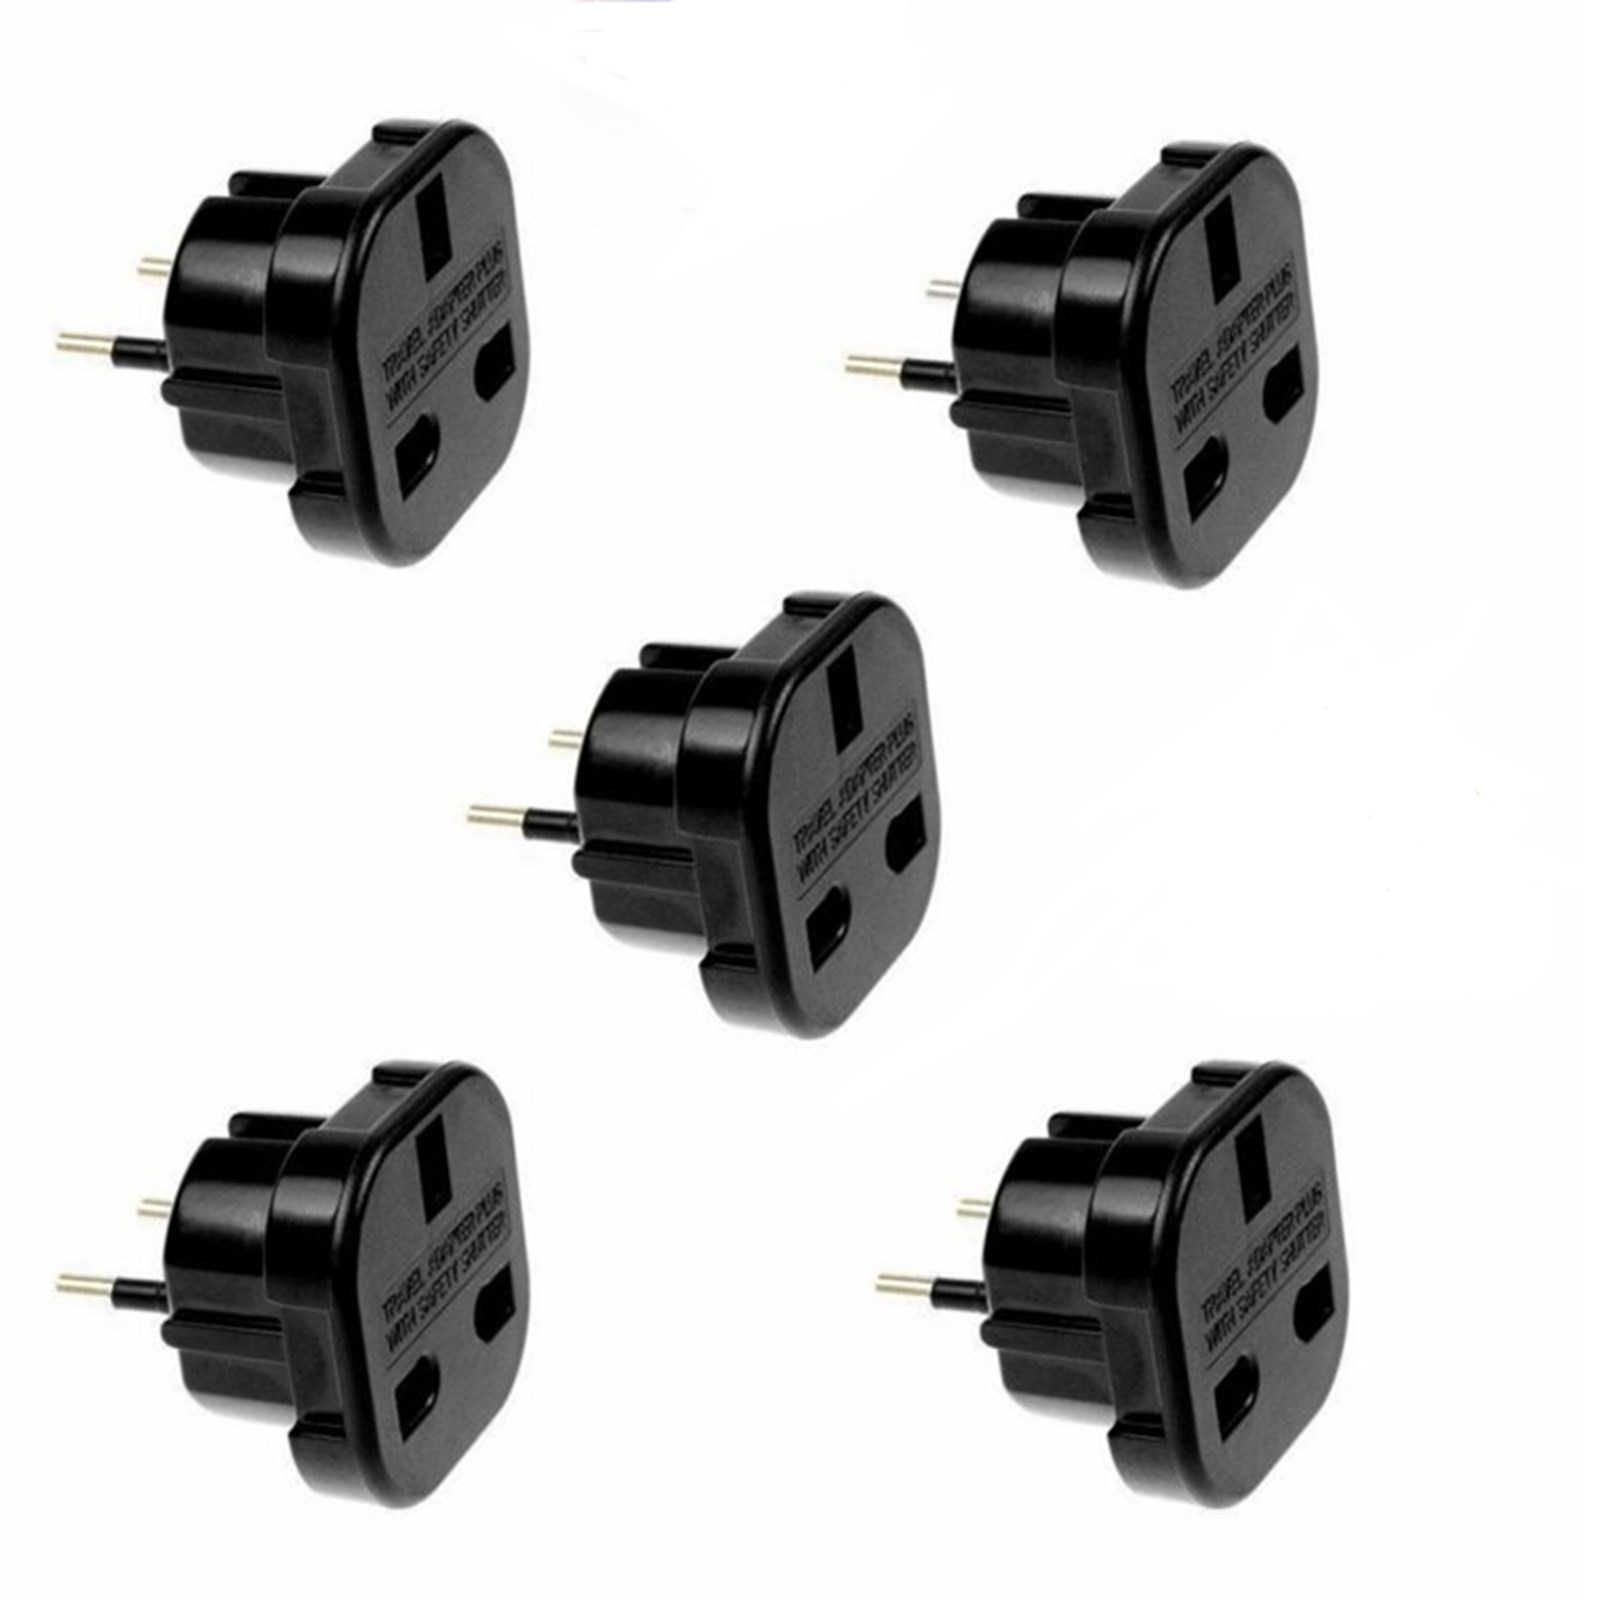 1Pcs Travel UK To EU Plug Converter 3 To 2 Pin Converter Adapter Power With Safety Shutter For Any European Destination